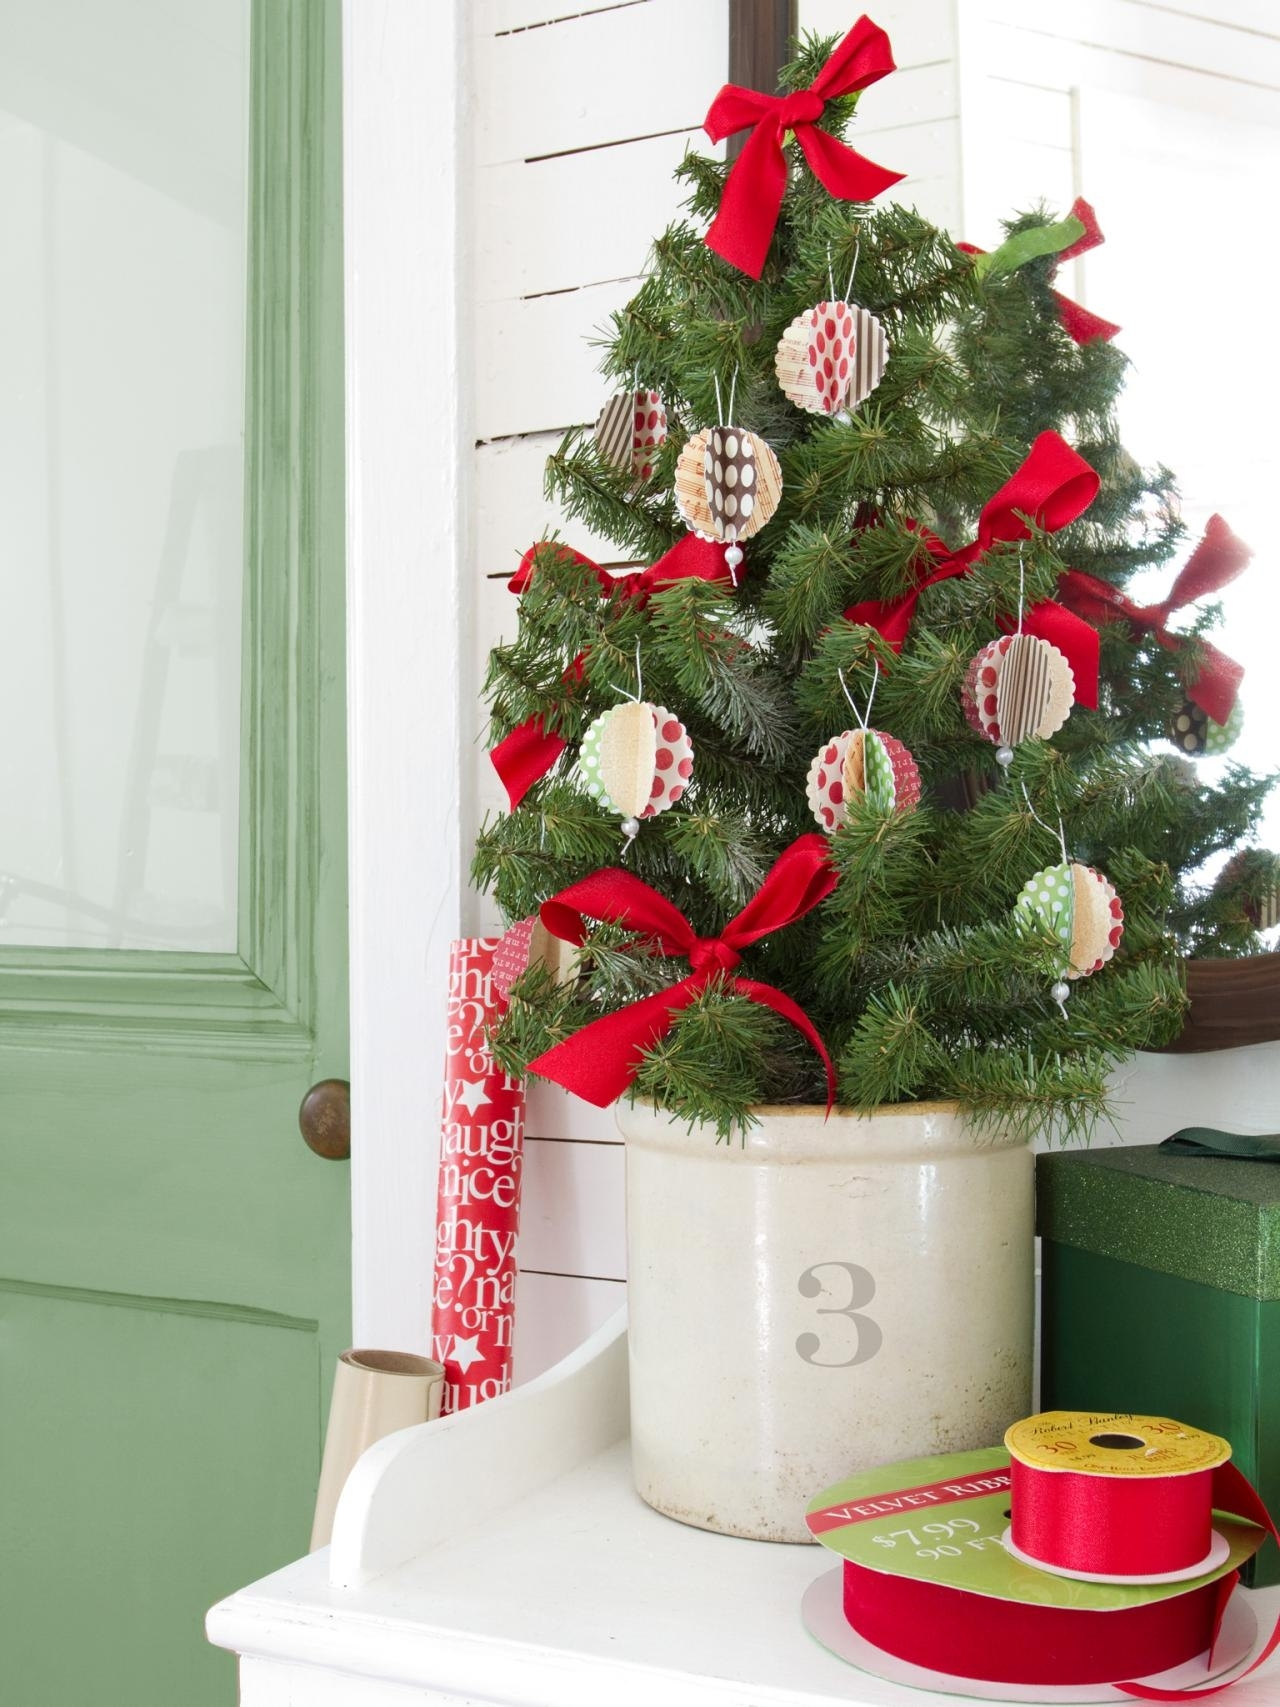 10 Cute Christmas Decorations Ideas To Make %name 2021